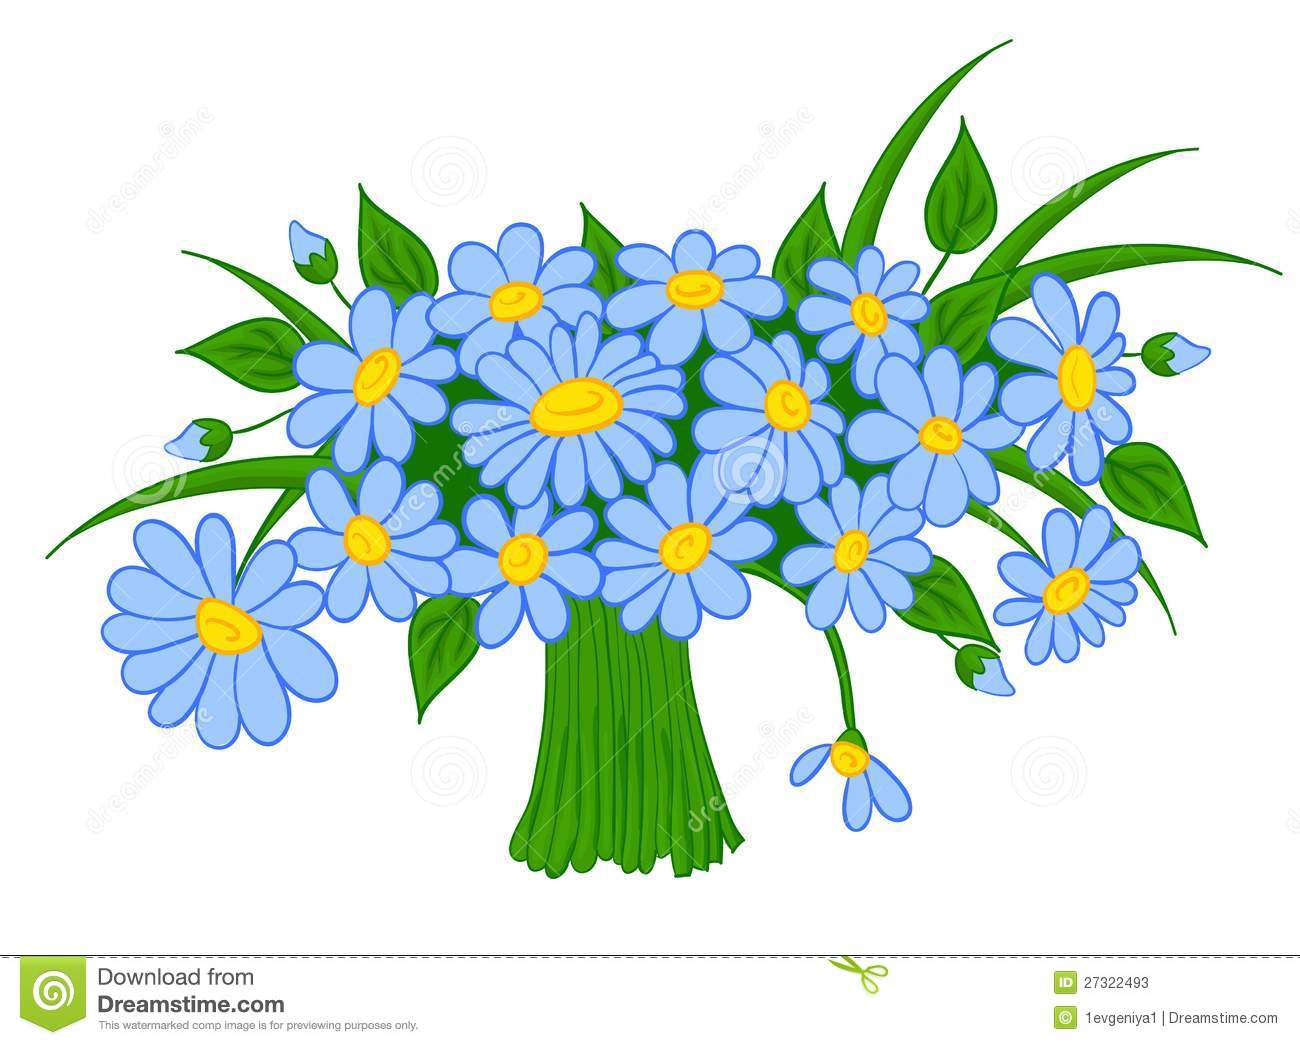 Animated Cartoon Bouquet Of Daisies Stock Photos - Image: 27322493